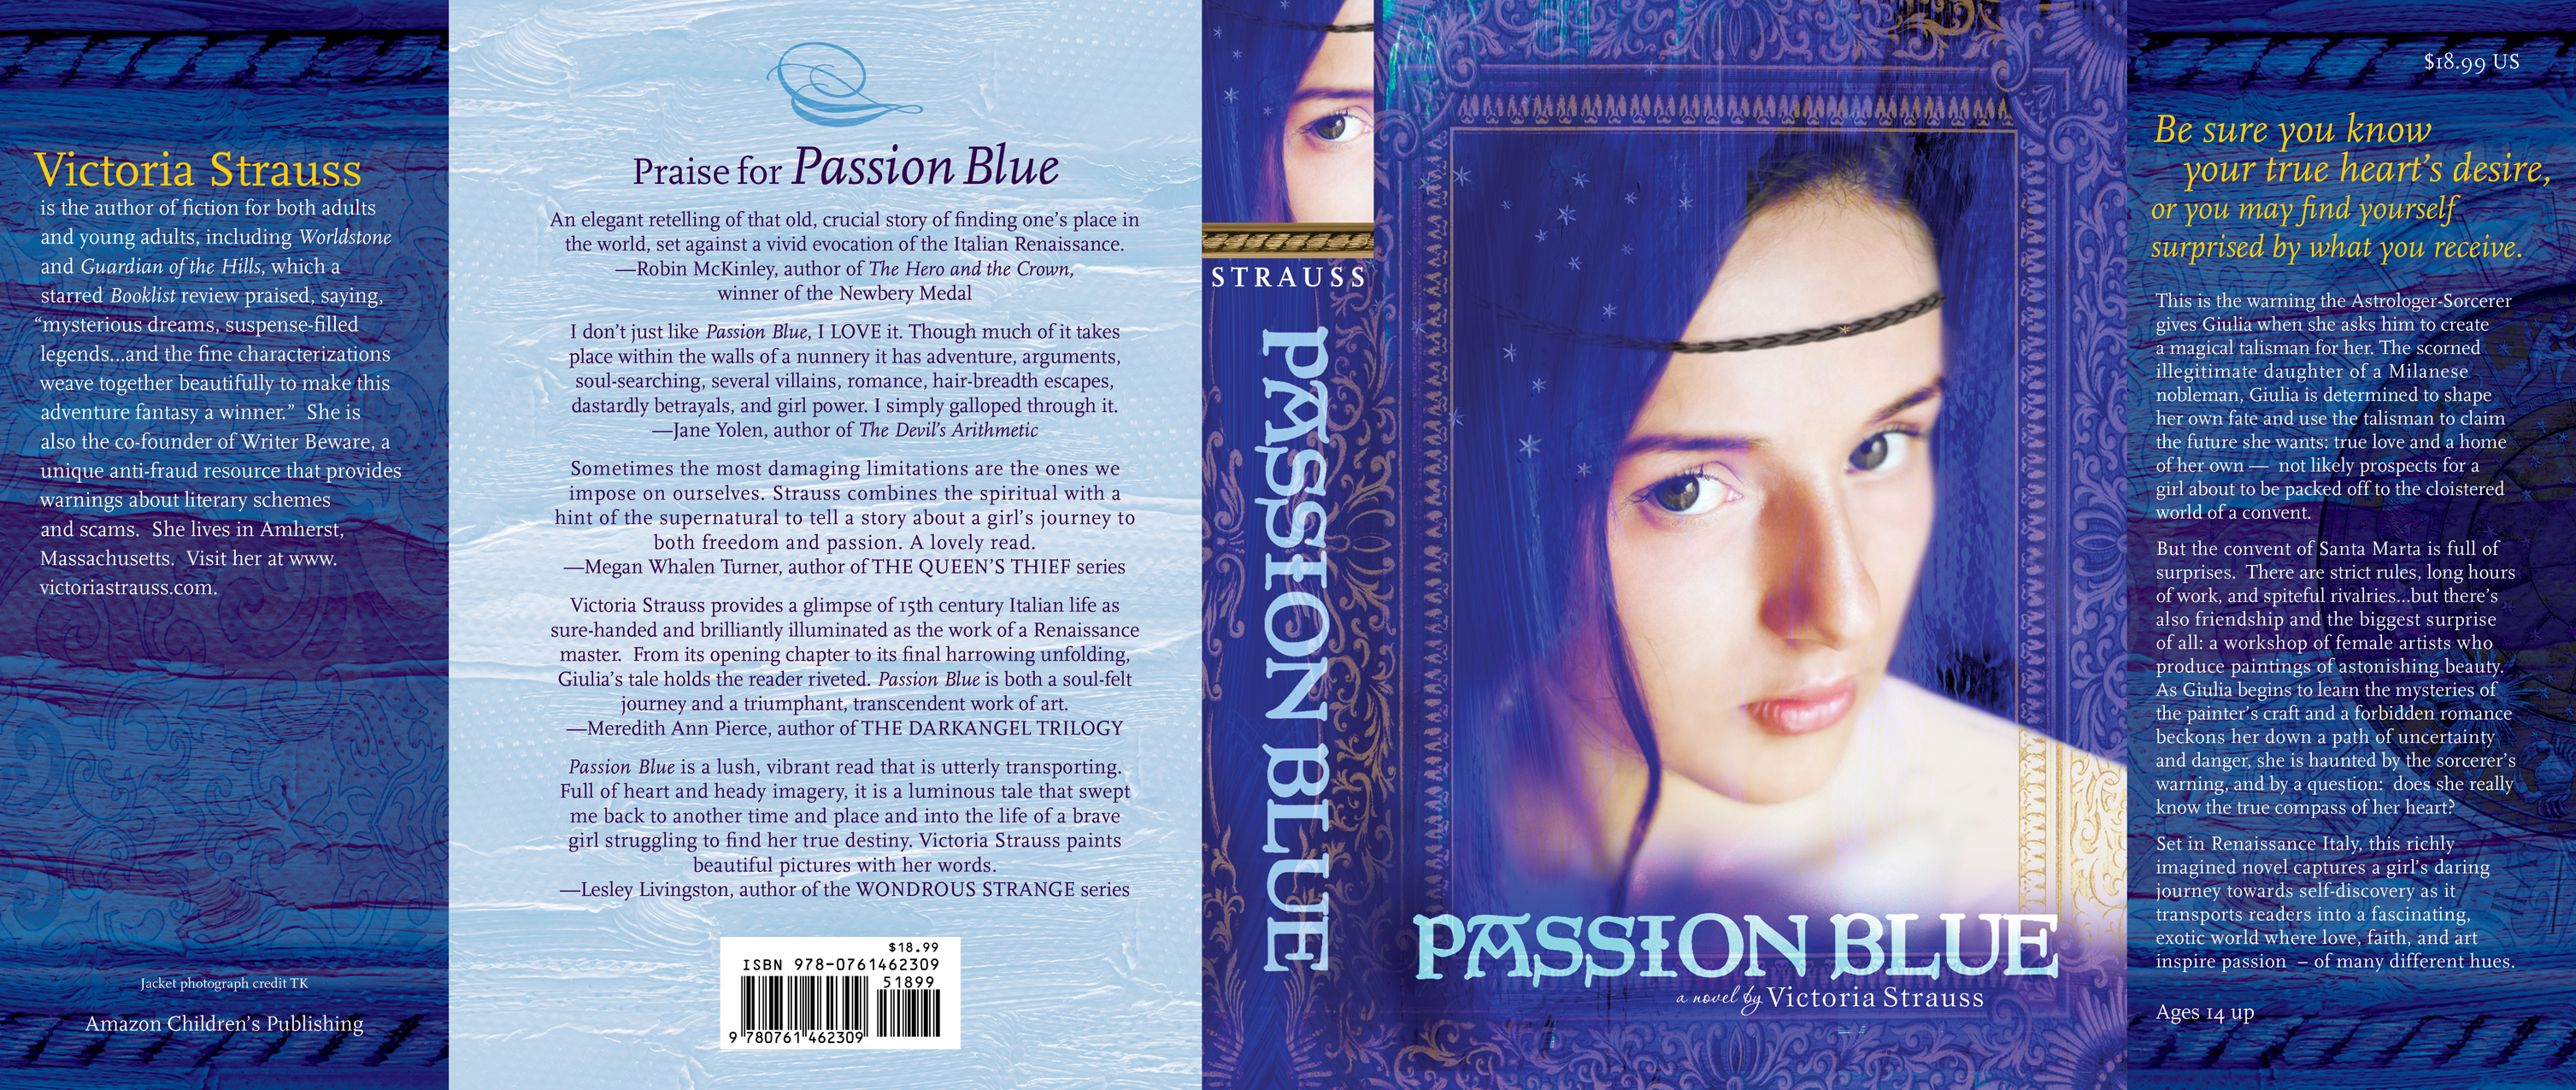 Passion Blue Cover Spread